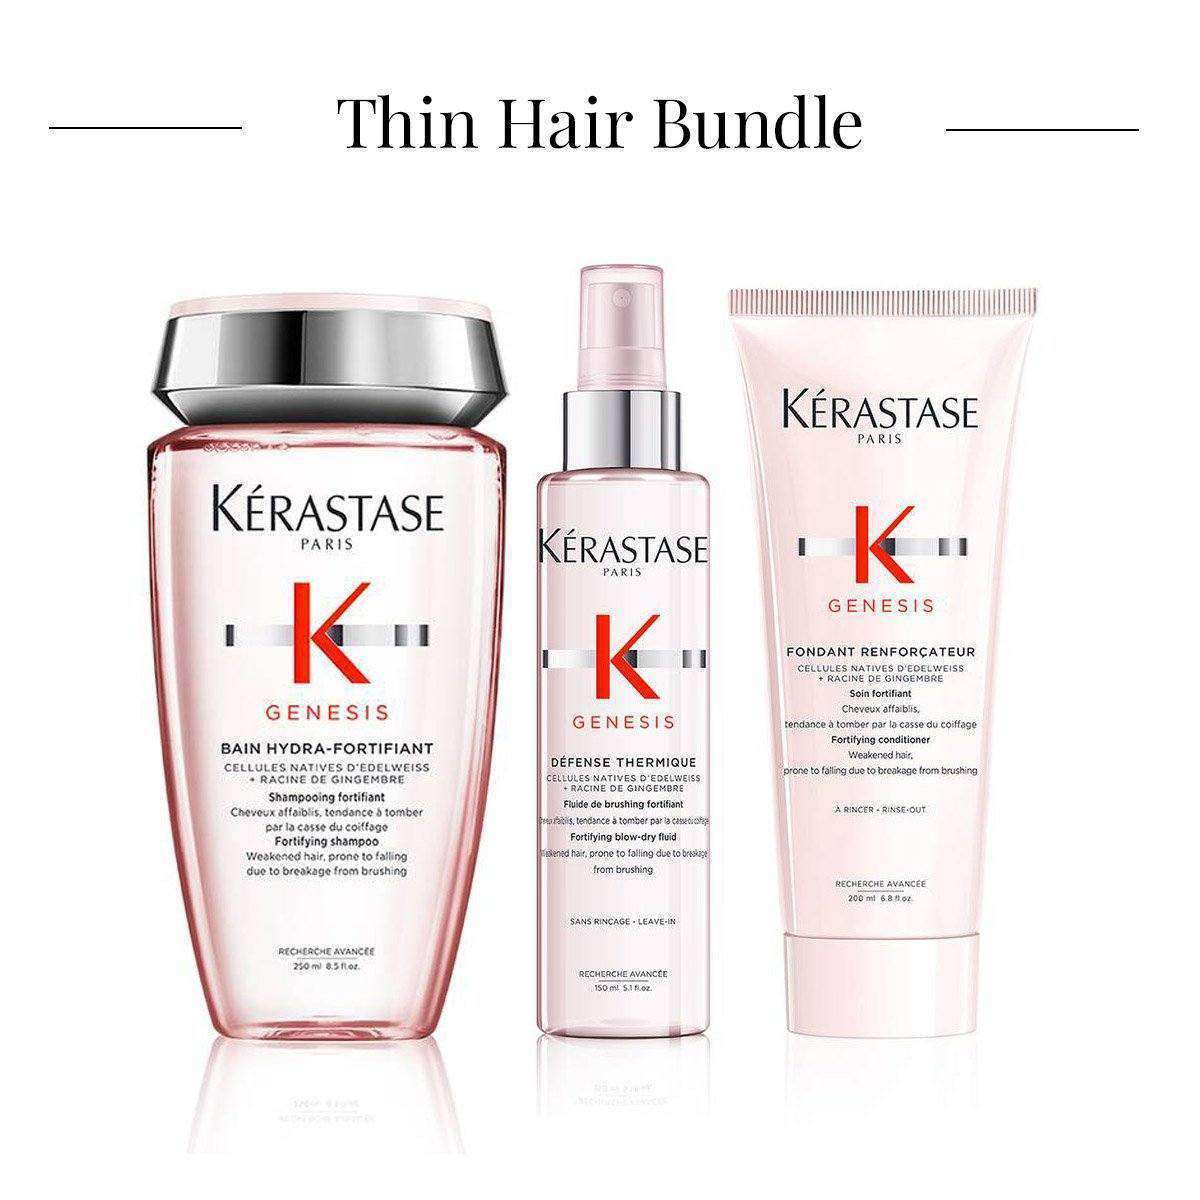 Thin Hair Bundle - Shant Tavitian